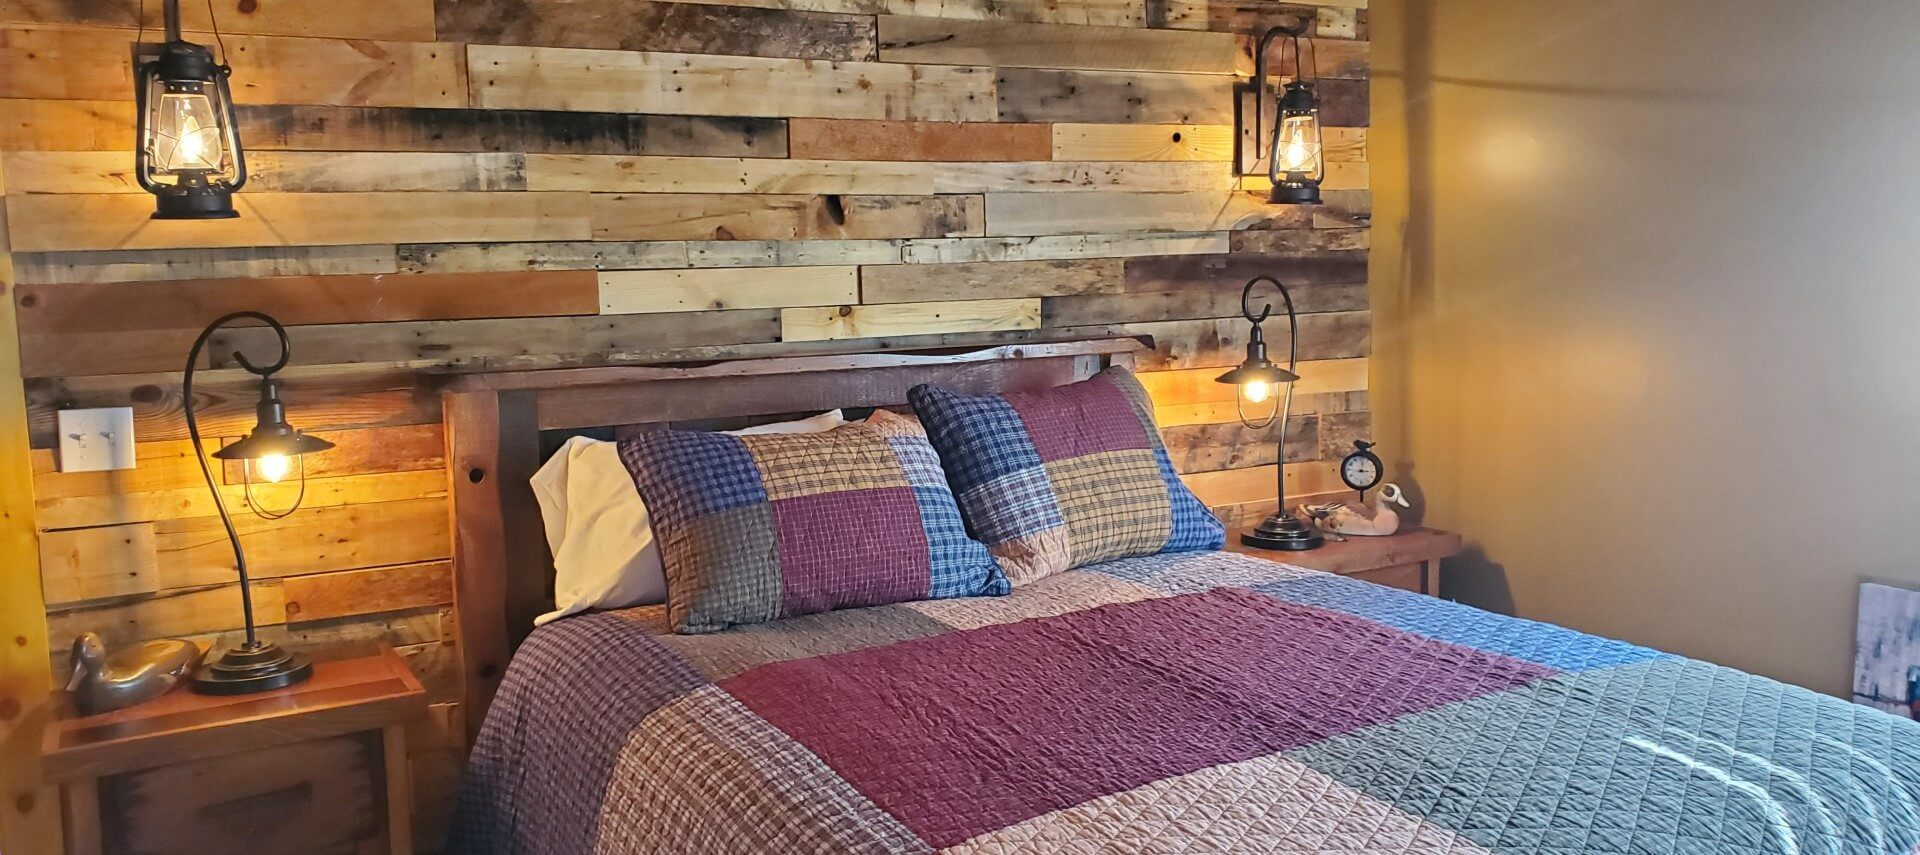 Bed with quilt